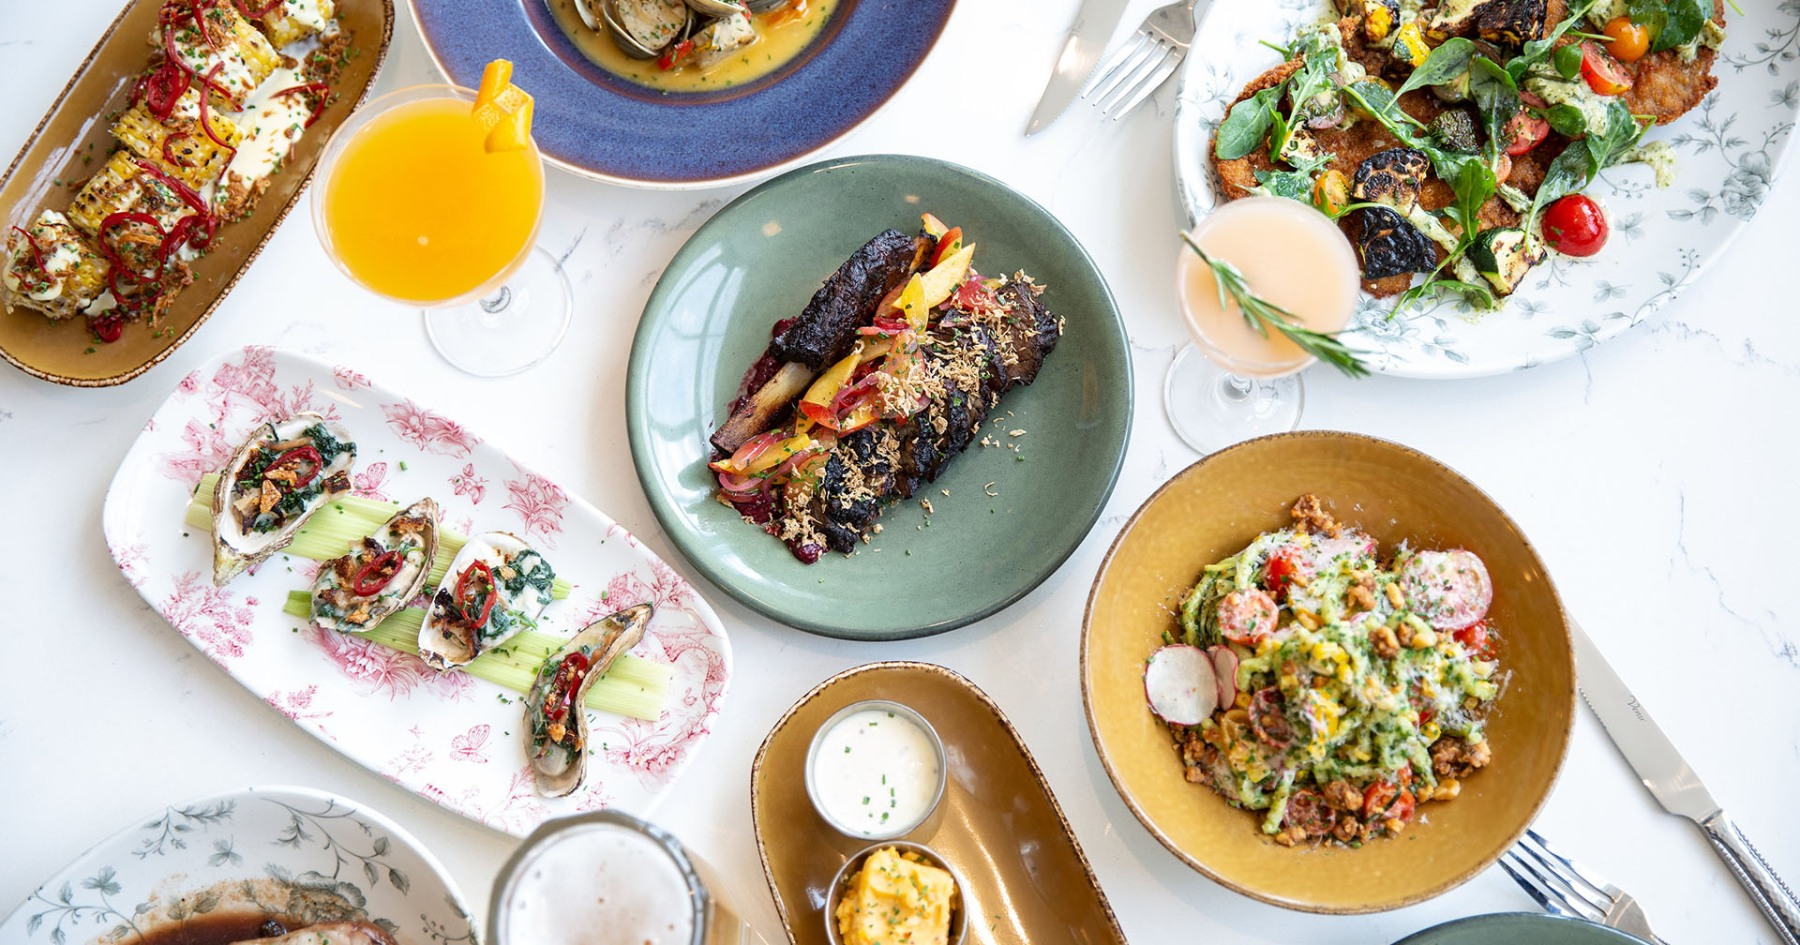 The 10 Best Chicago Restaurant Openings of 2018